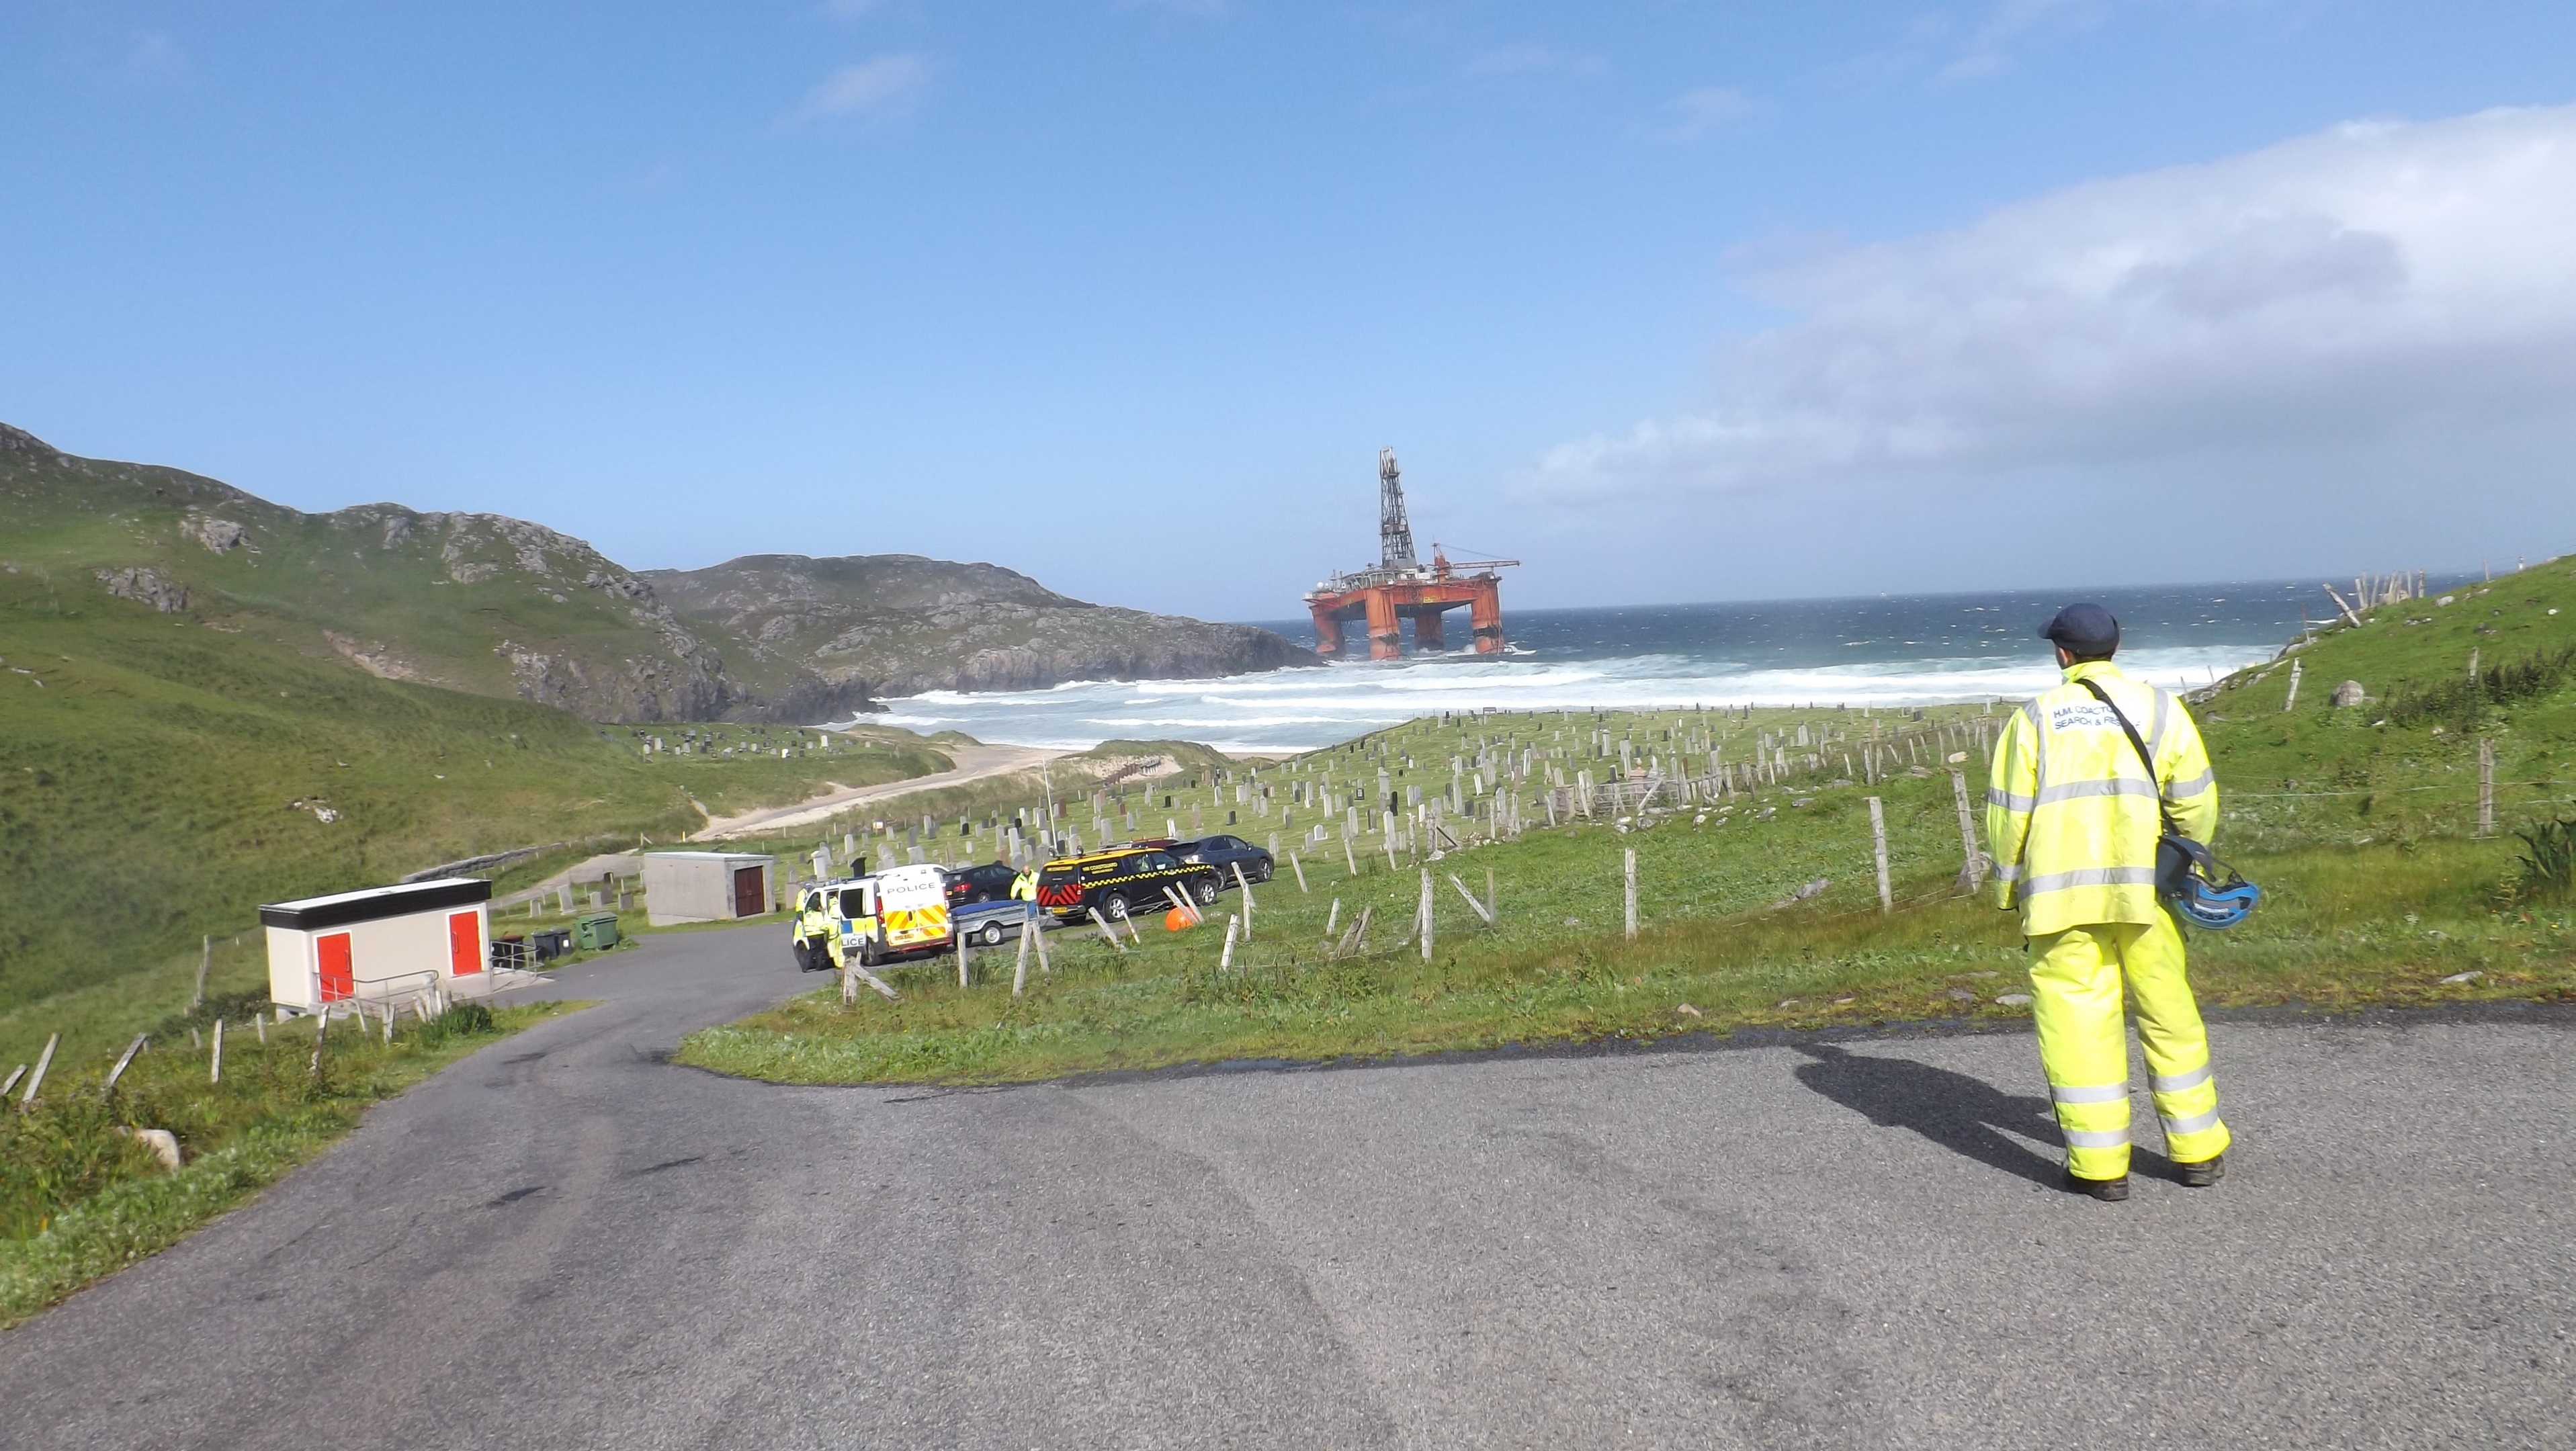 Transocean's drilling rig aground